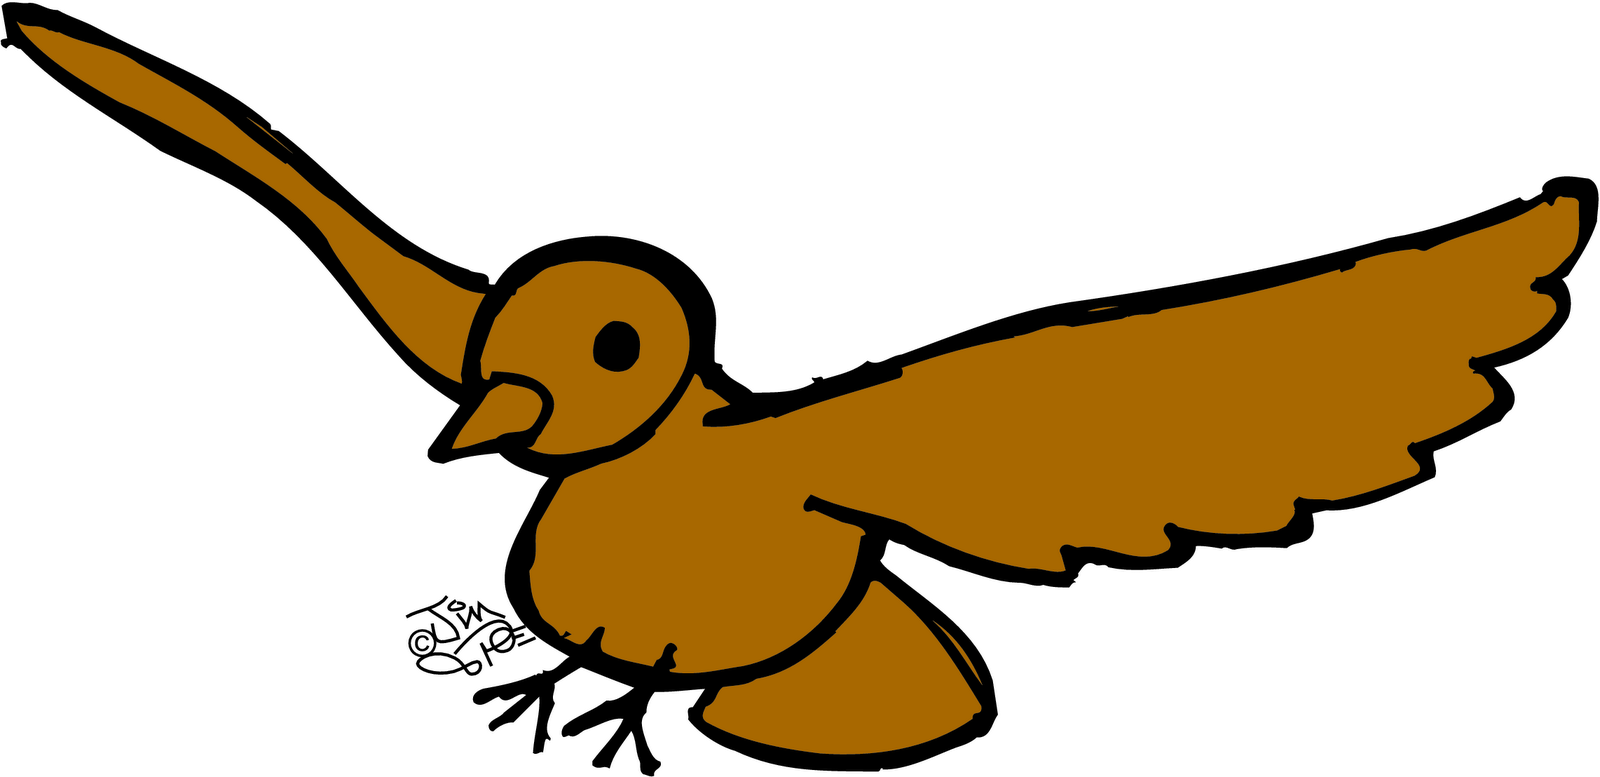 Free bird clipart the cliparts 2